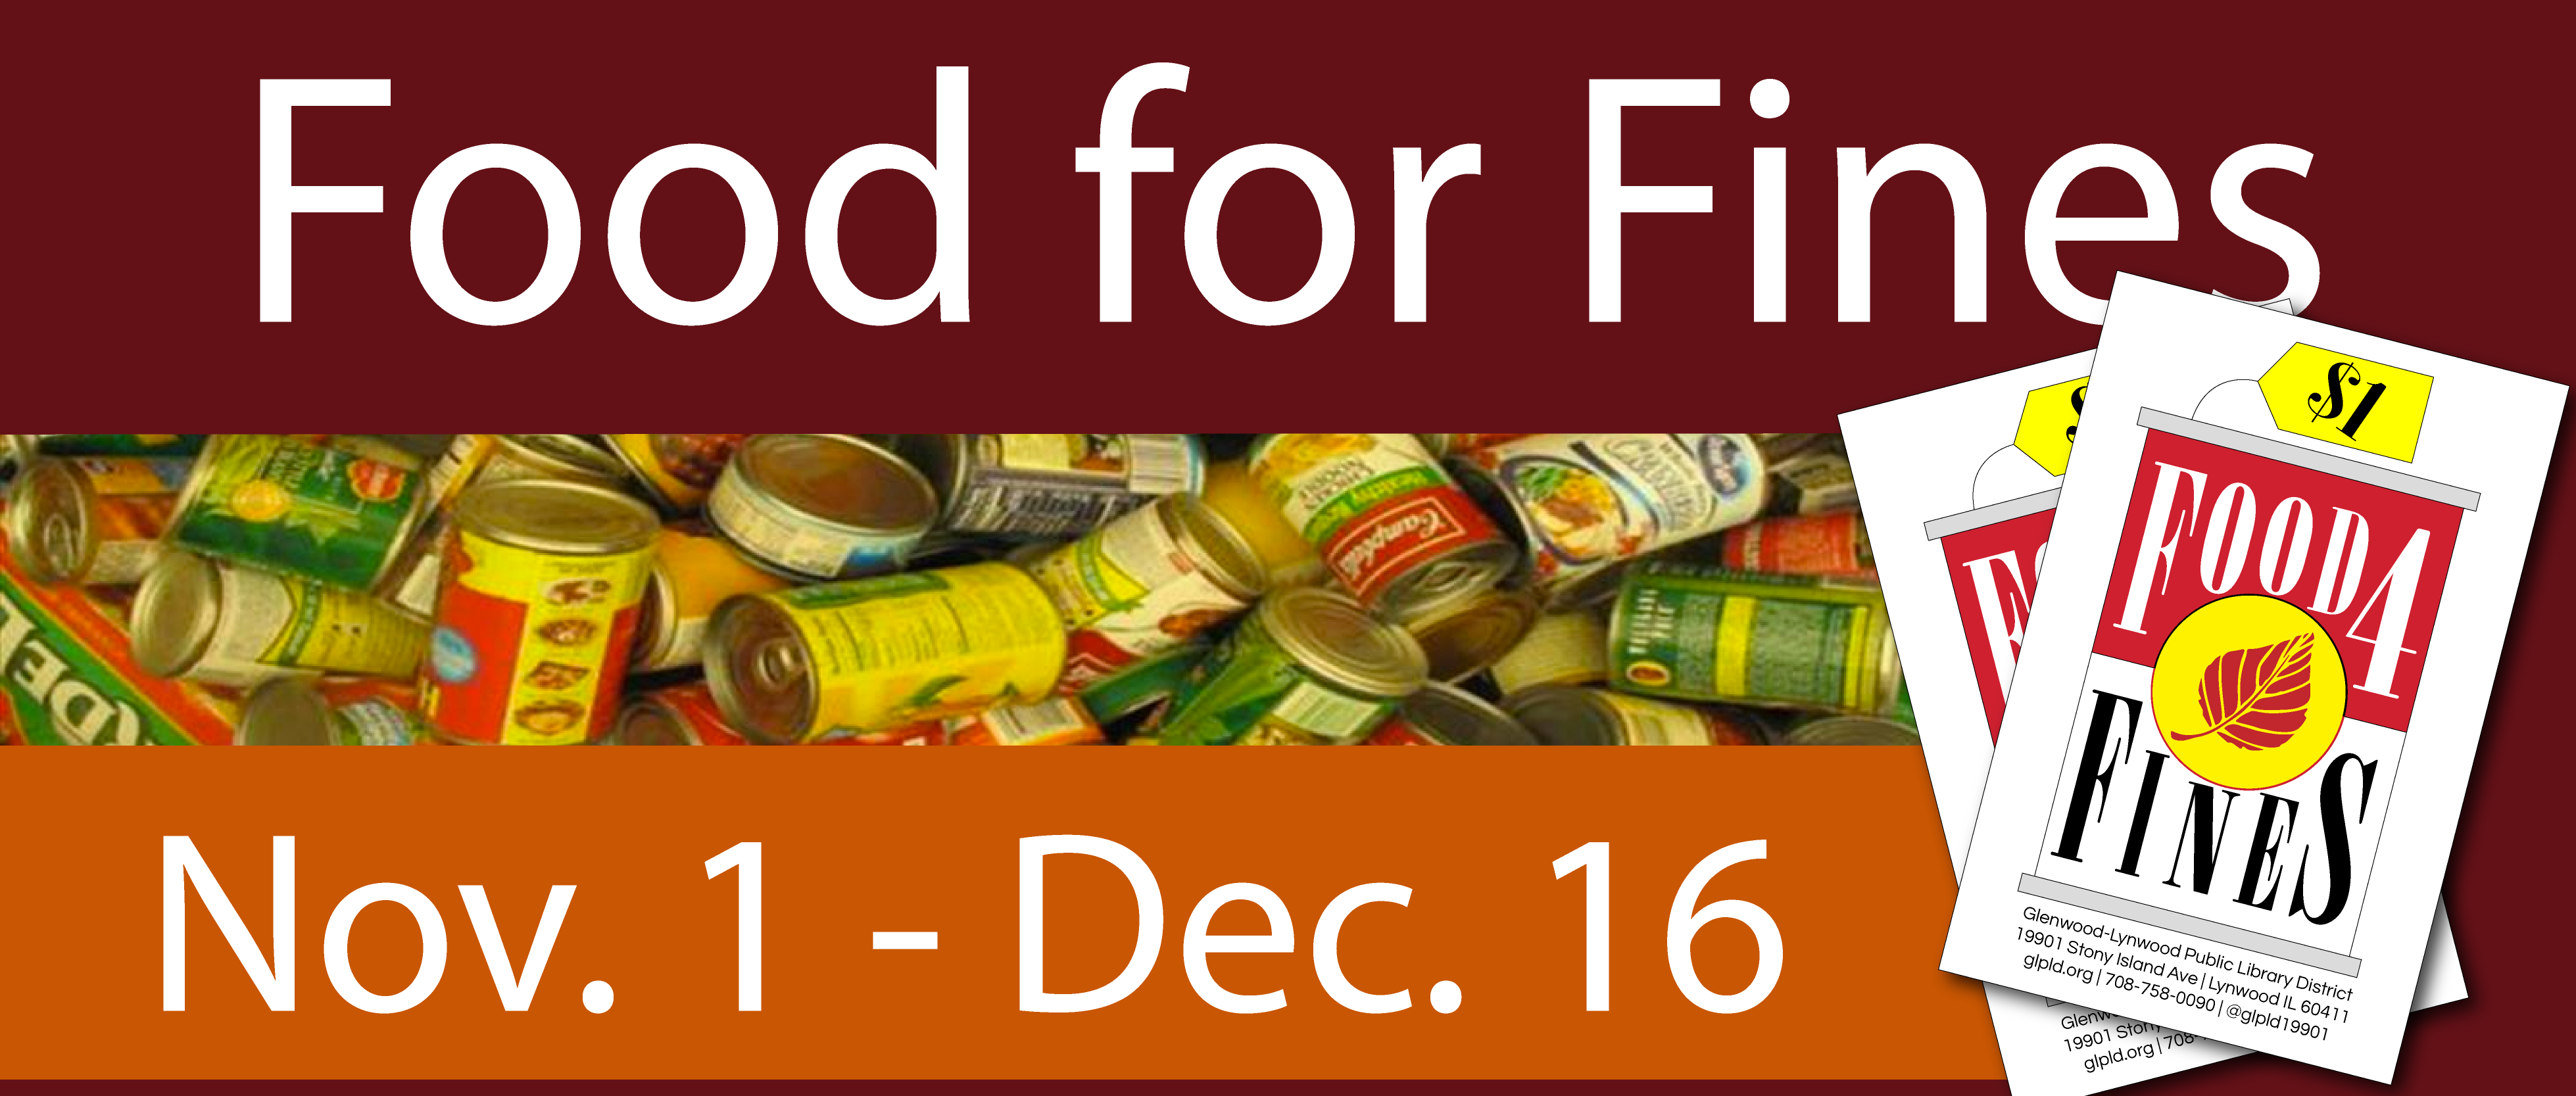 food-for-fines-no-request-wp